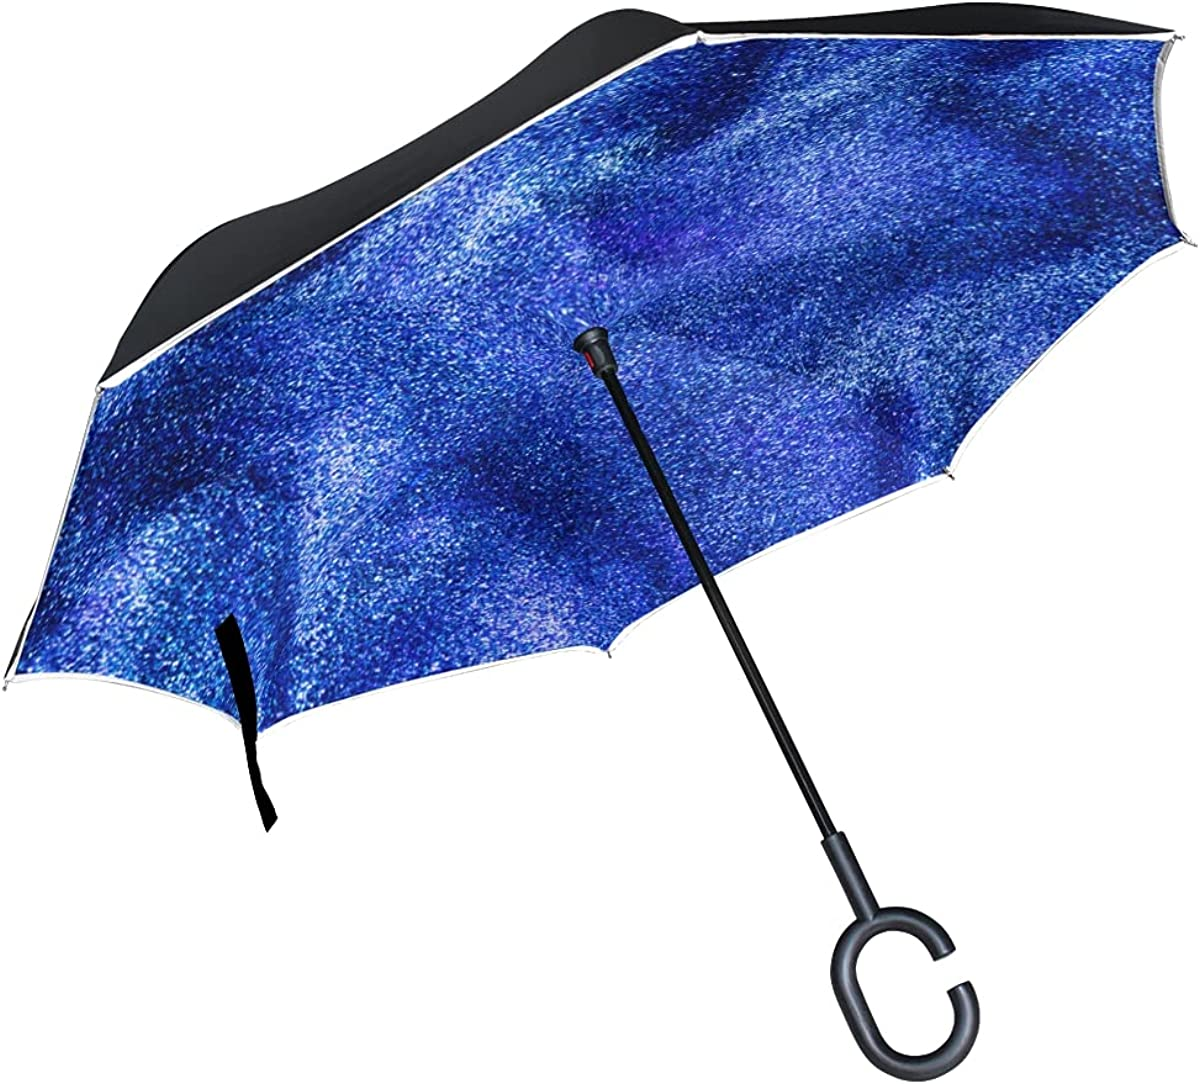 Inverted Umbrella Manufacturer direct delivery Blue Dynamic Windproo Liquid Ranking TOP5 Abstract